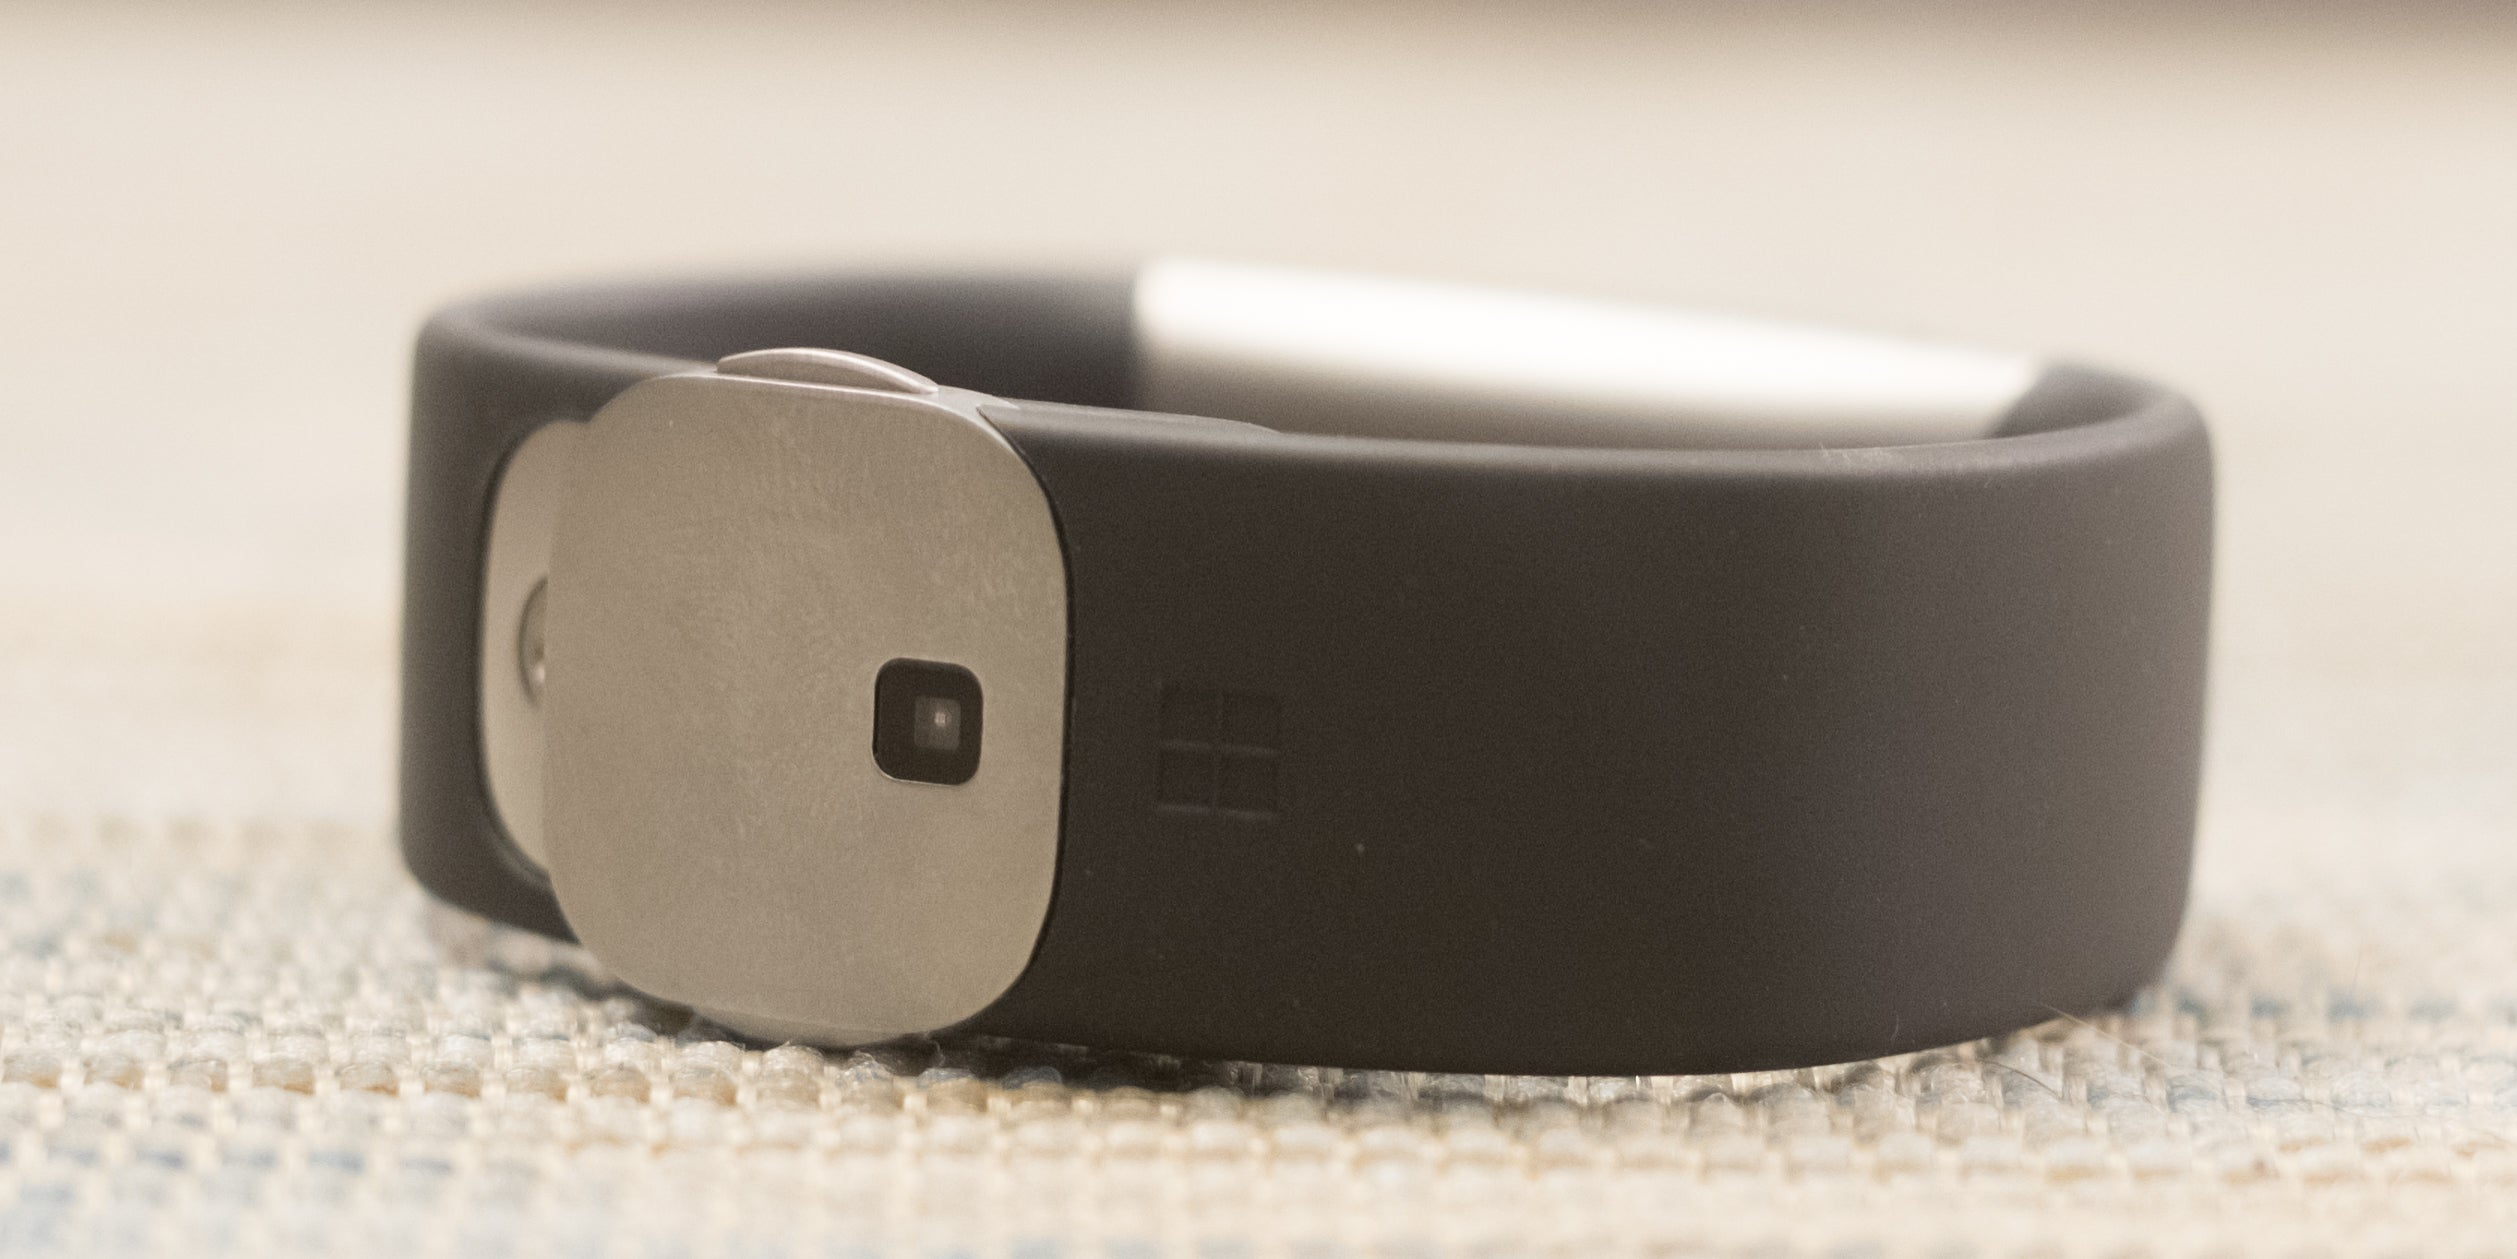 Microsoft Band 2 Review: Ugly, Uncomfortable, but Great for Workouts